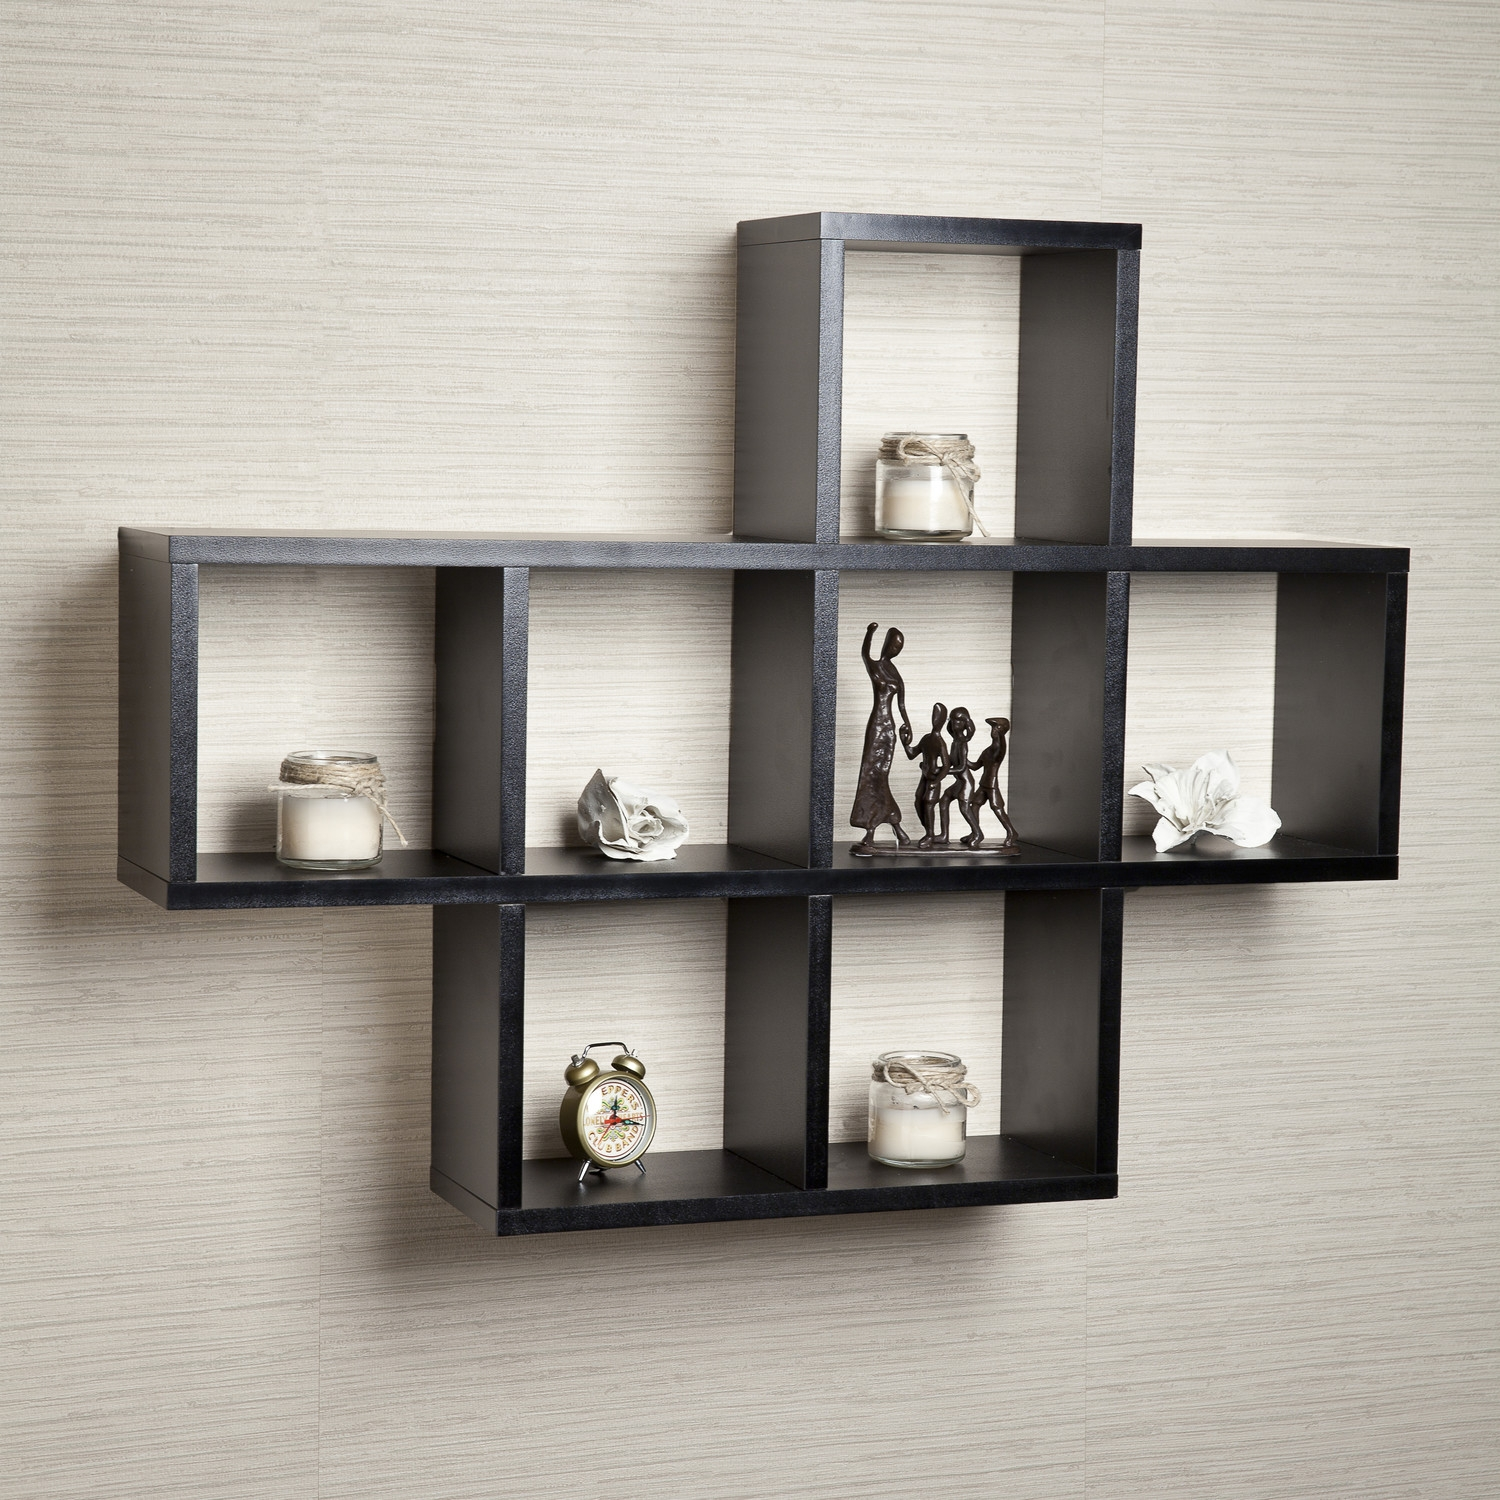 Wall Shelves Design Narrow Wall Shelves For Minimalist Home Decor With Regard To Wall Shelf (Image 11 of 15)